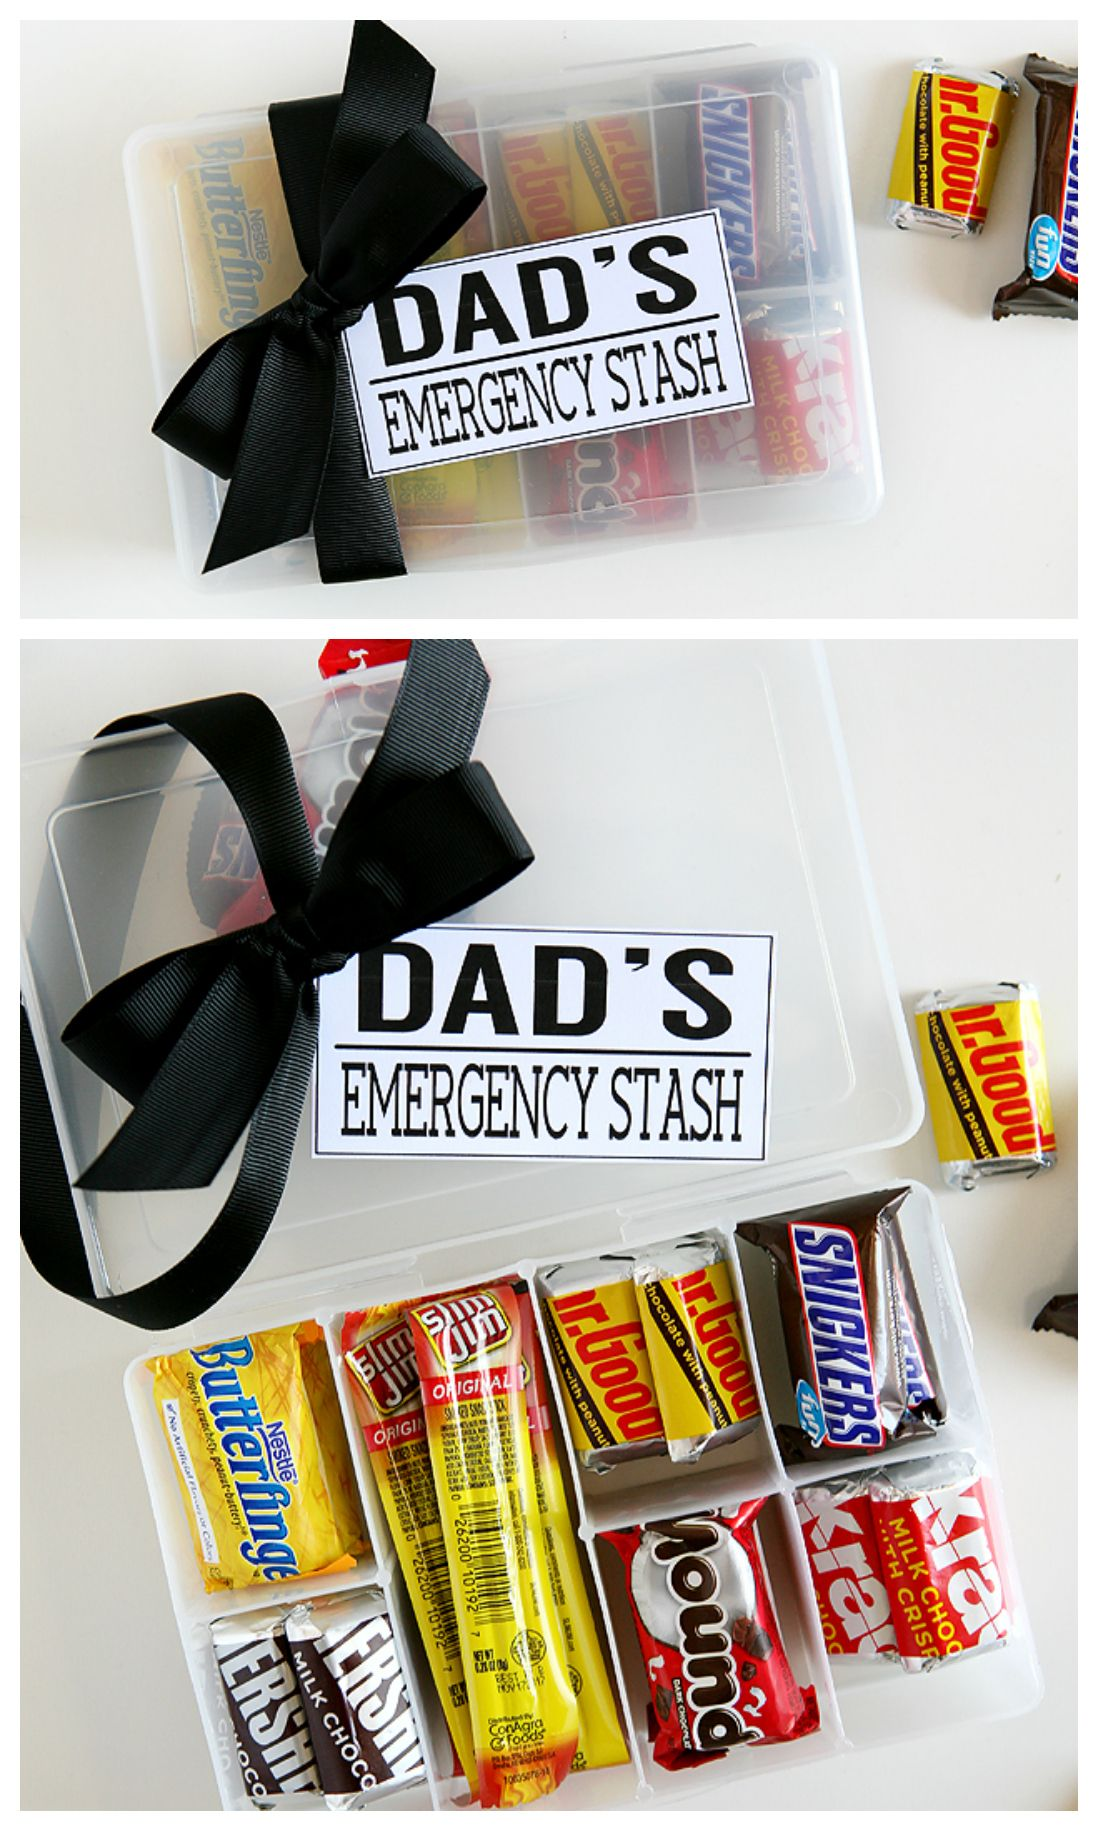 Dad's Emergency Stash Eighteen25 Homemade gifts for